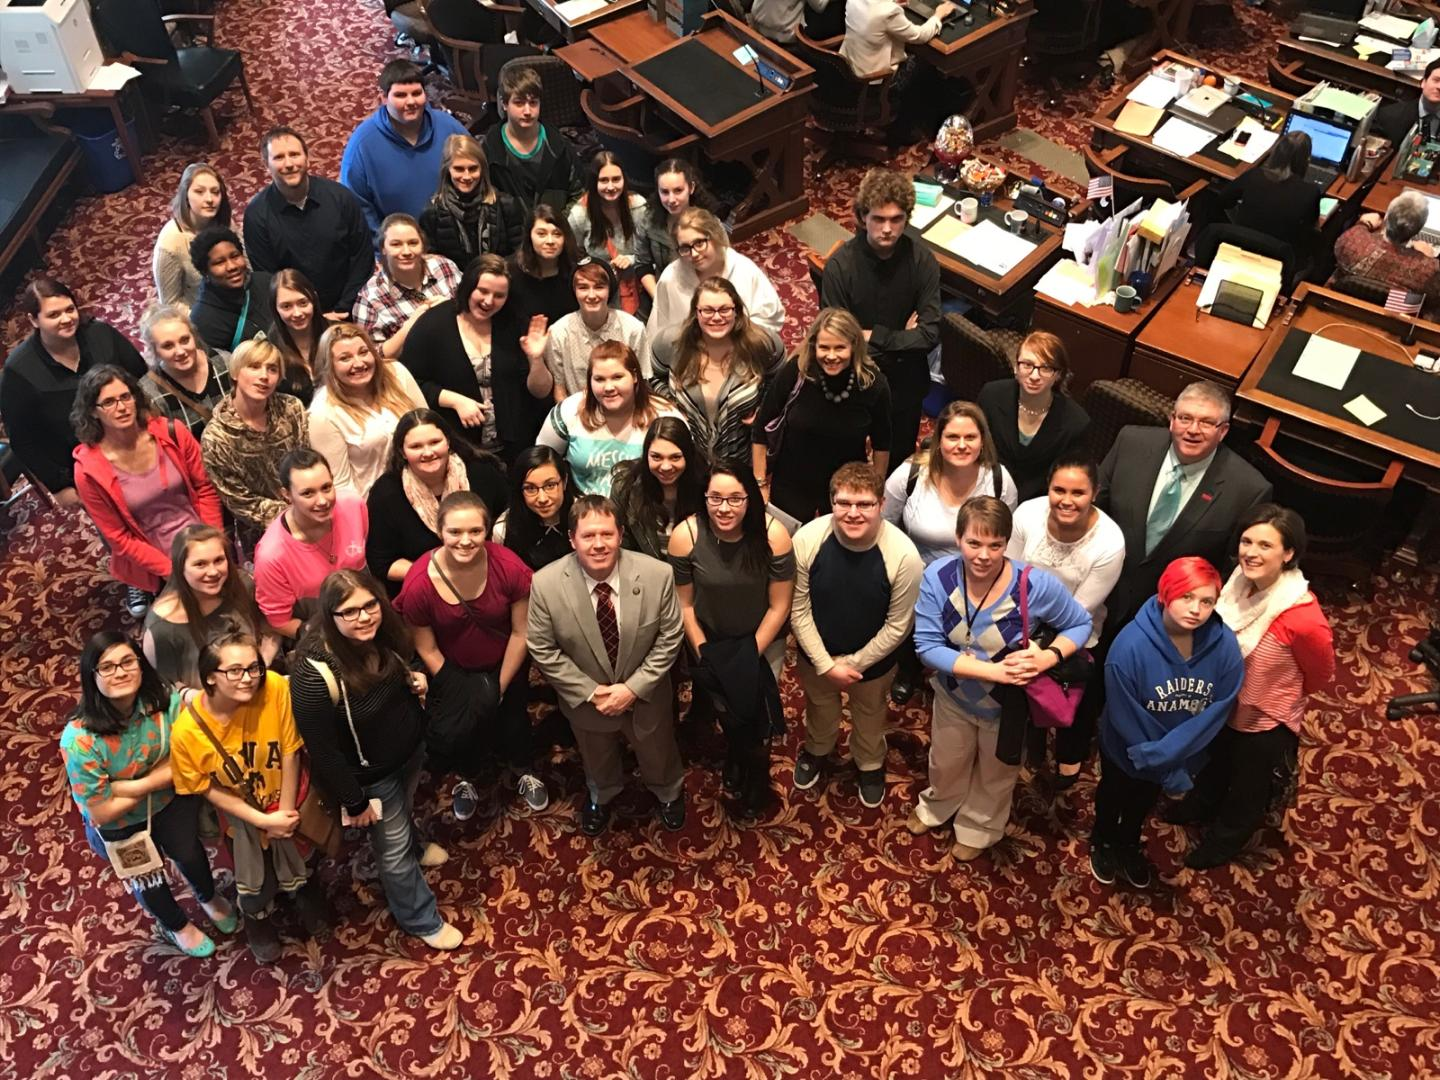 Jones County Safe and Healthy Coalition student advocates are pictured here inside the Capitol with Sen. Tod Bowman and Sen. Dan Zumbach. The group was in Des Moines for Day on the Hill. (Photo submitted)